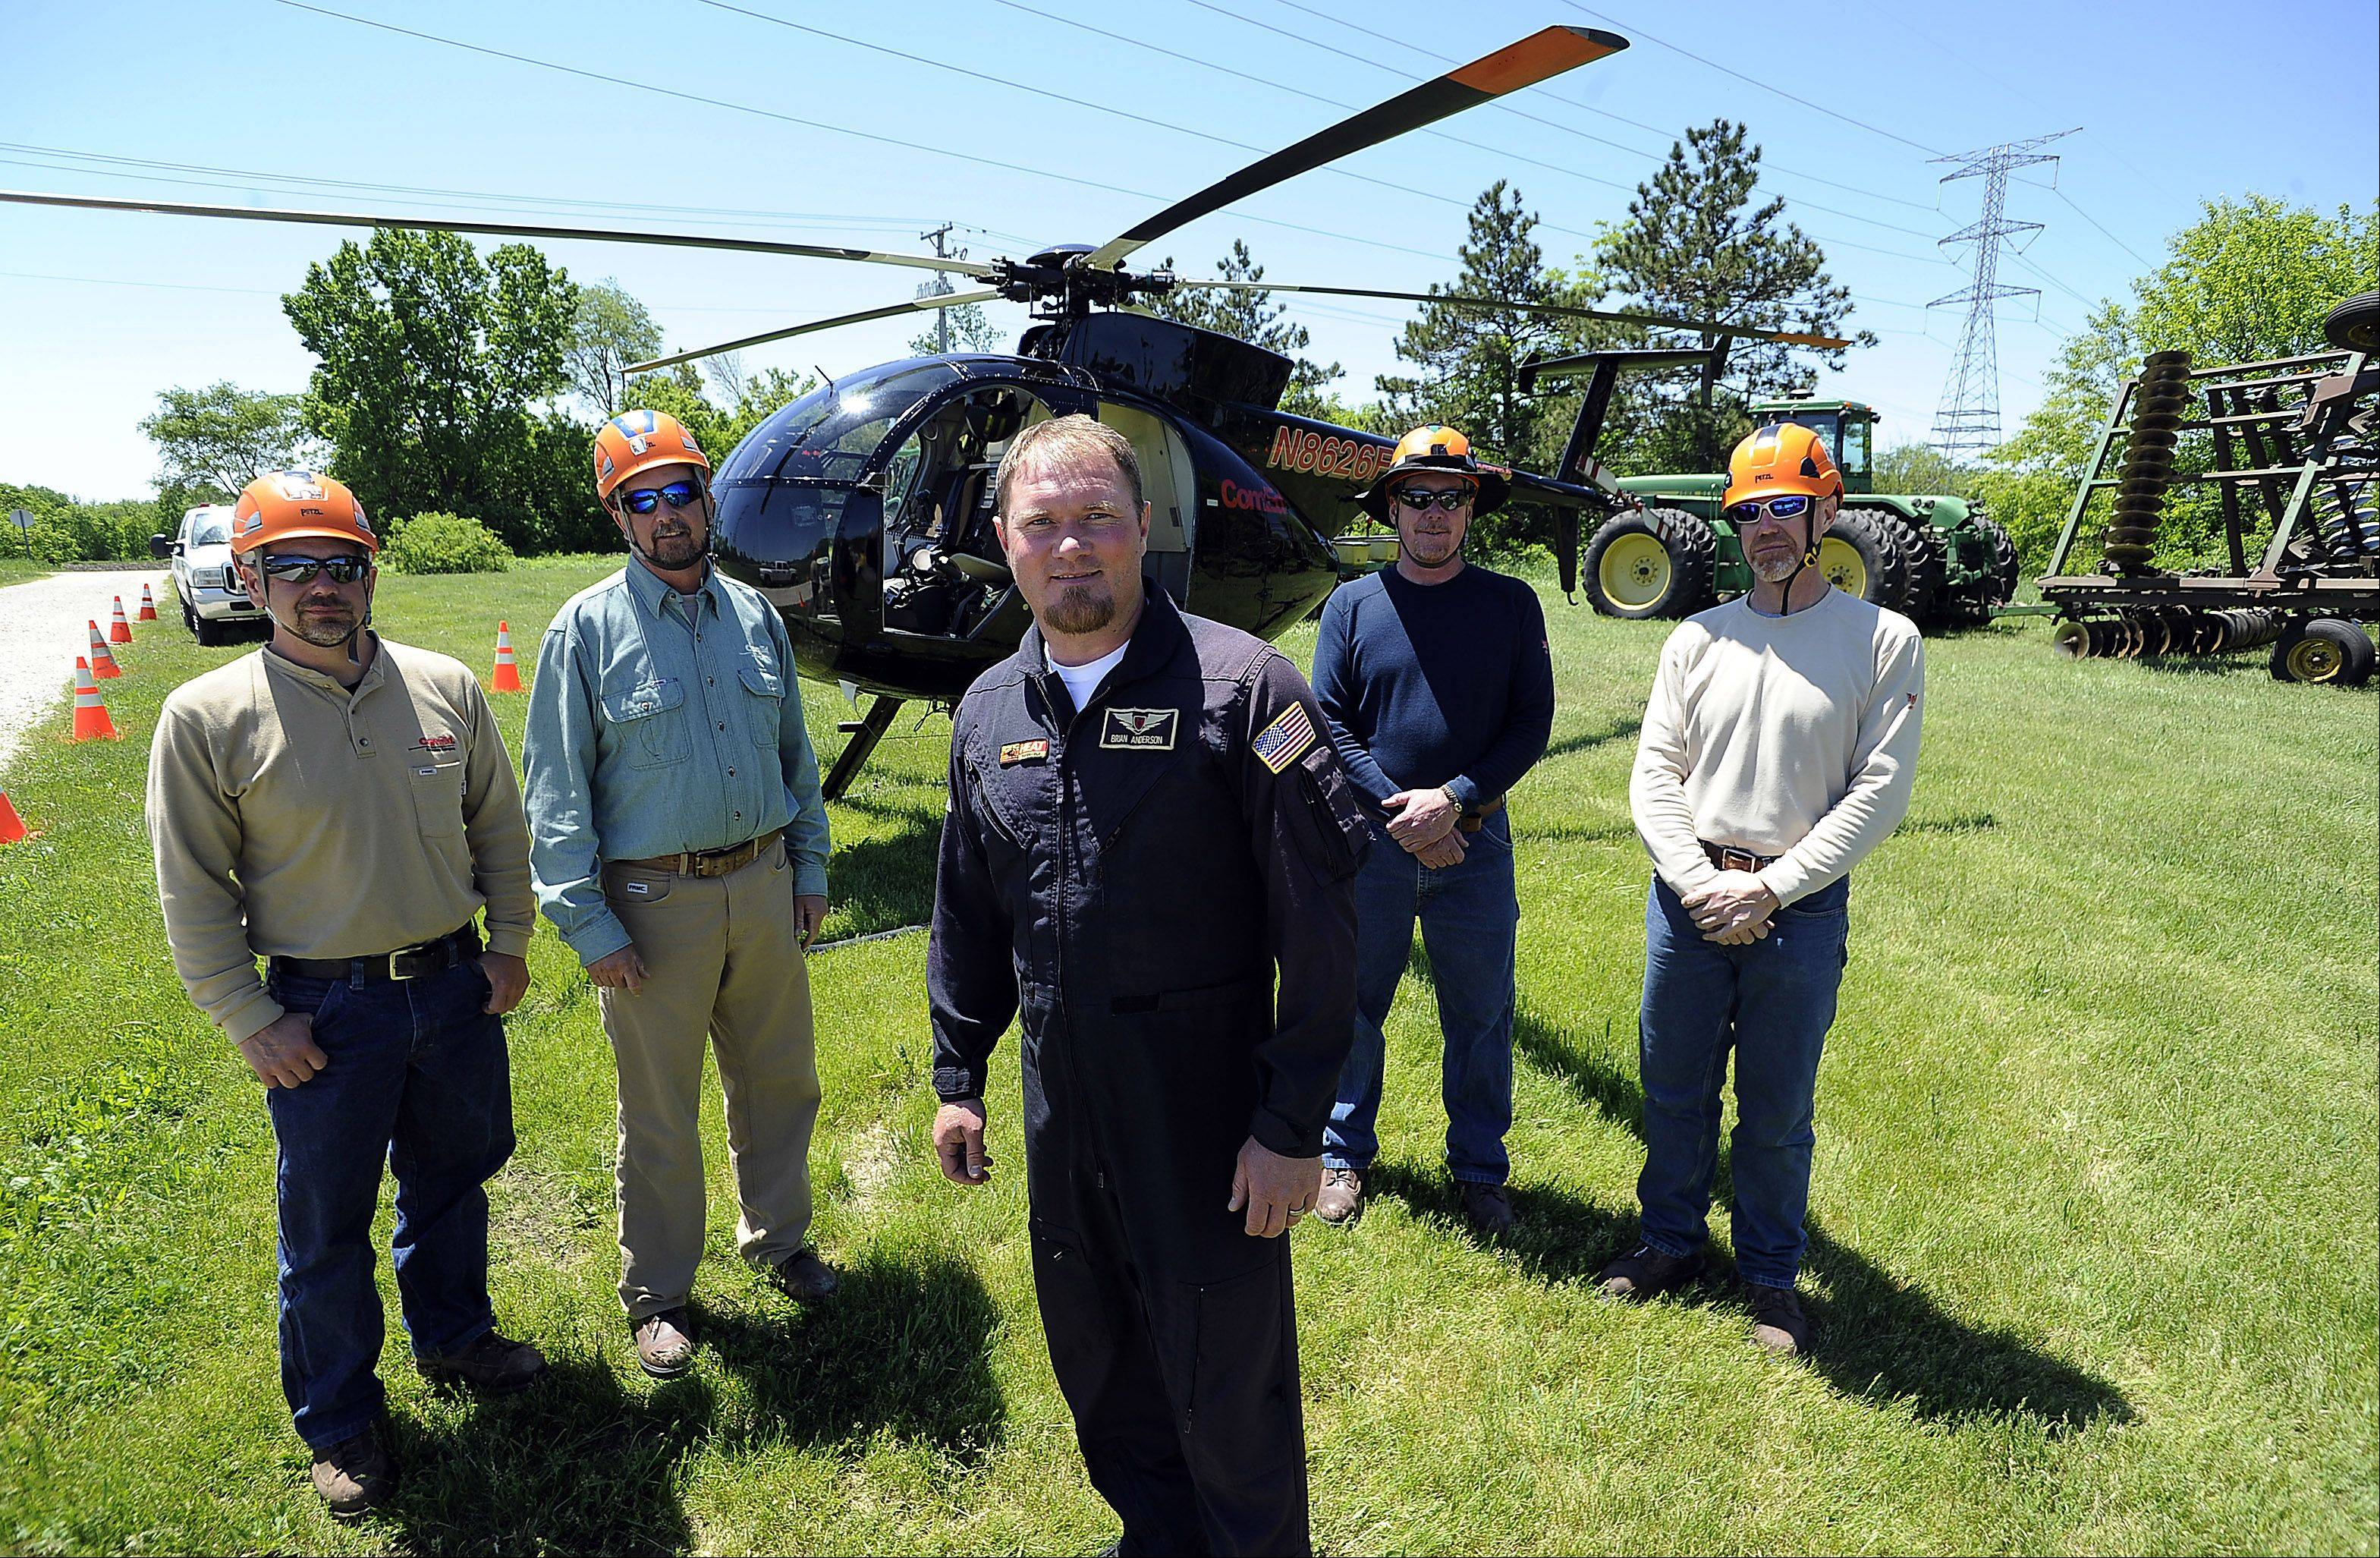 The ComEd team members of the Aerial Specialist Group are Ron Kellett of Rockford, Mike McClintock of Plainfield, Pilot Brian Anderson of Joliet, Mike Jones of Manhattan and Ken Myers of Lee get ready to fix an electrical transmission tower in Wayne.